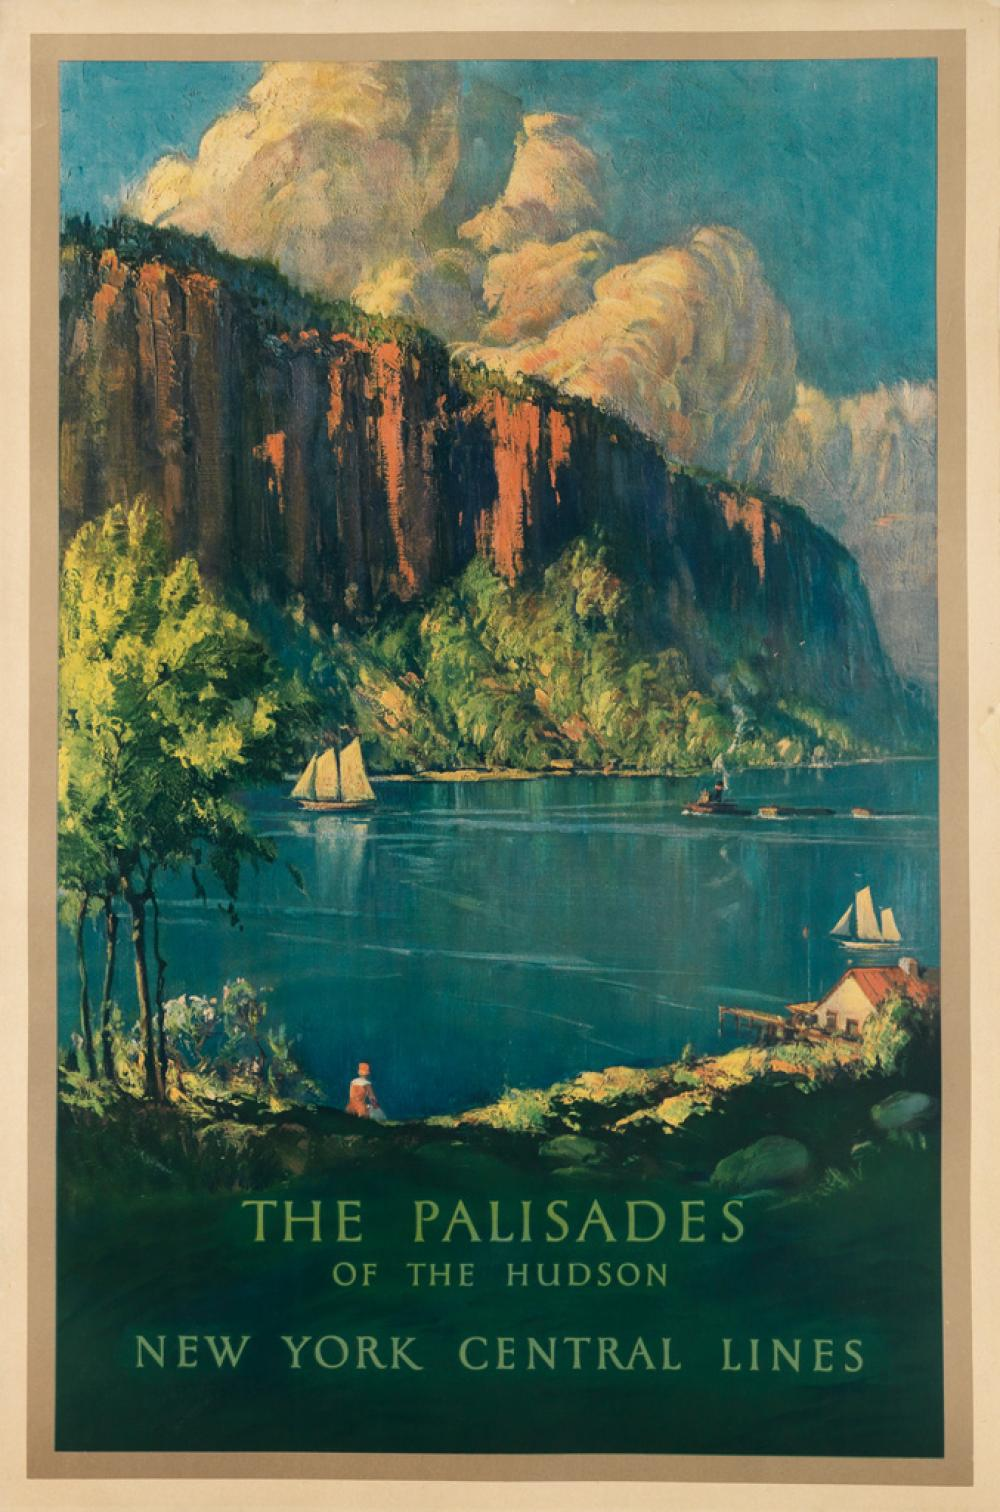 DESIGNER UNKNOWN. THE PALISADES OF THE HUDSON / NEW YORK CENTRAL LINES. 40x26 inches, 103x68 cm. Latham Litho & Ptg. Co., Long Island C